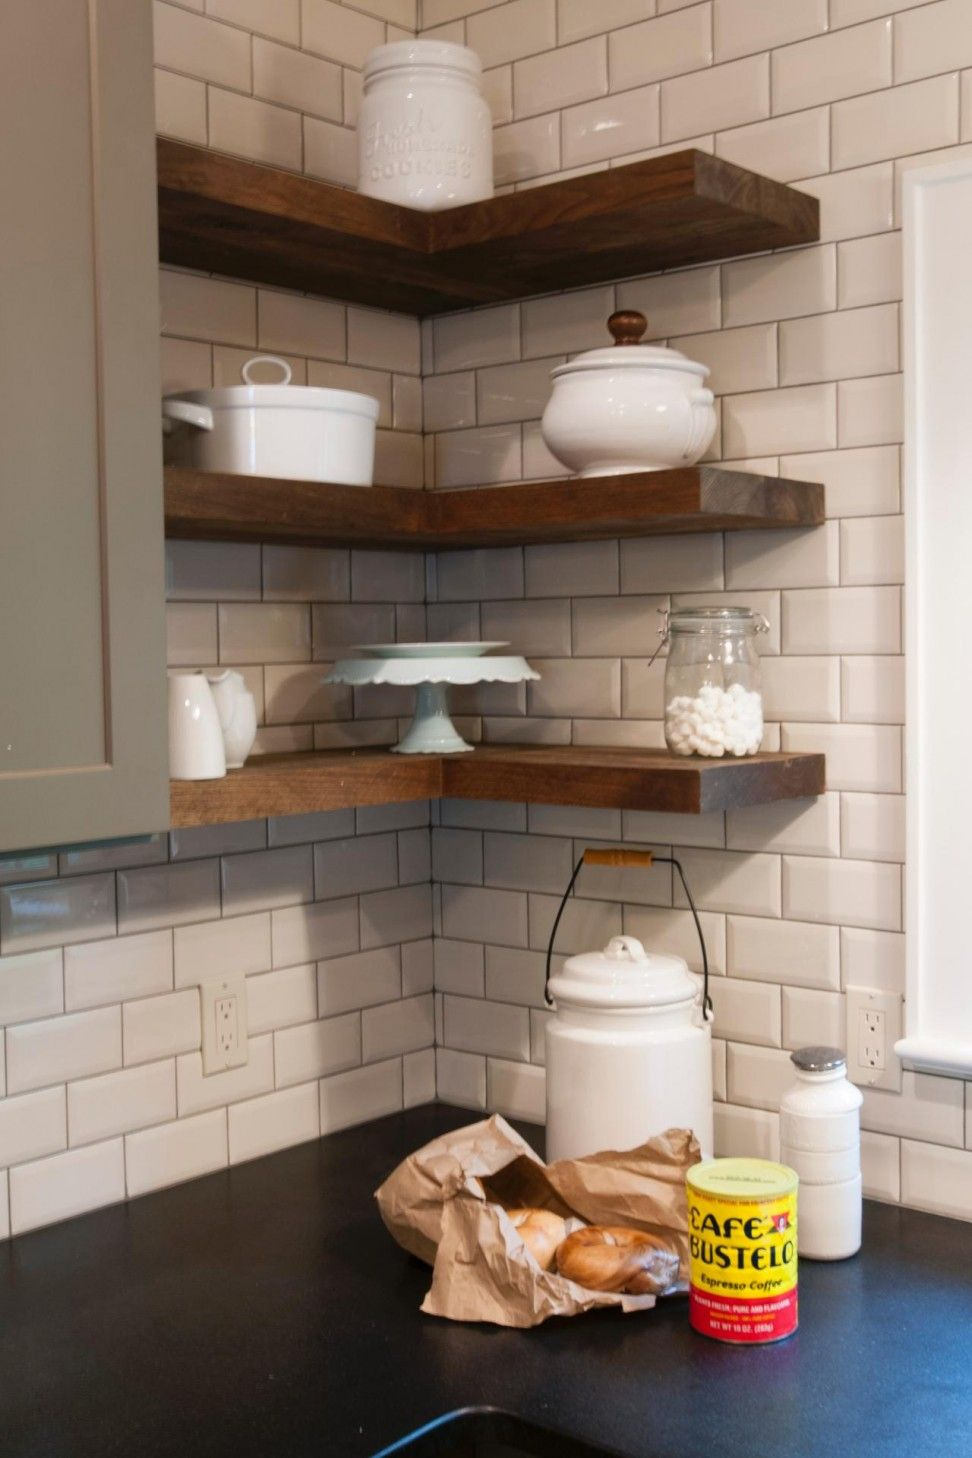 white brick ceramic wall tile featuring wooden kitchen cabinet and floating shelves cabinets cool modern home decorating ideas inch corner shelf tree coat stand support pins